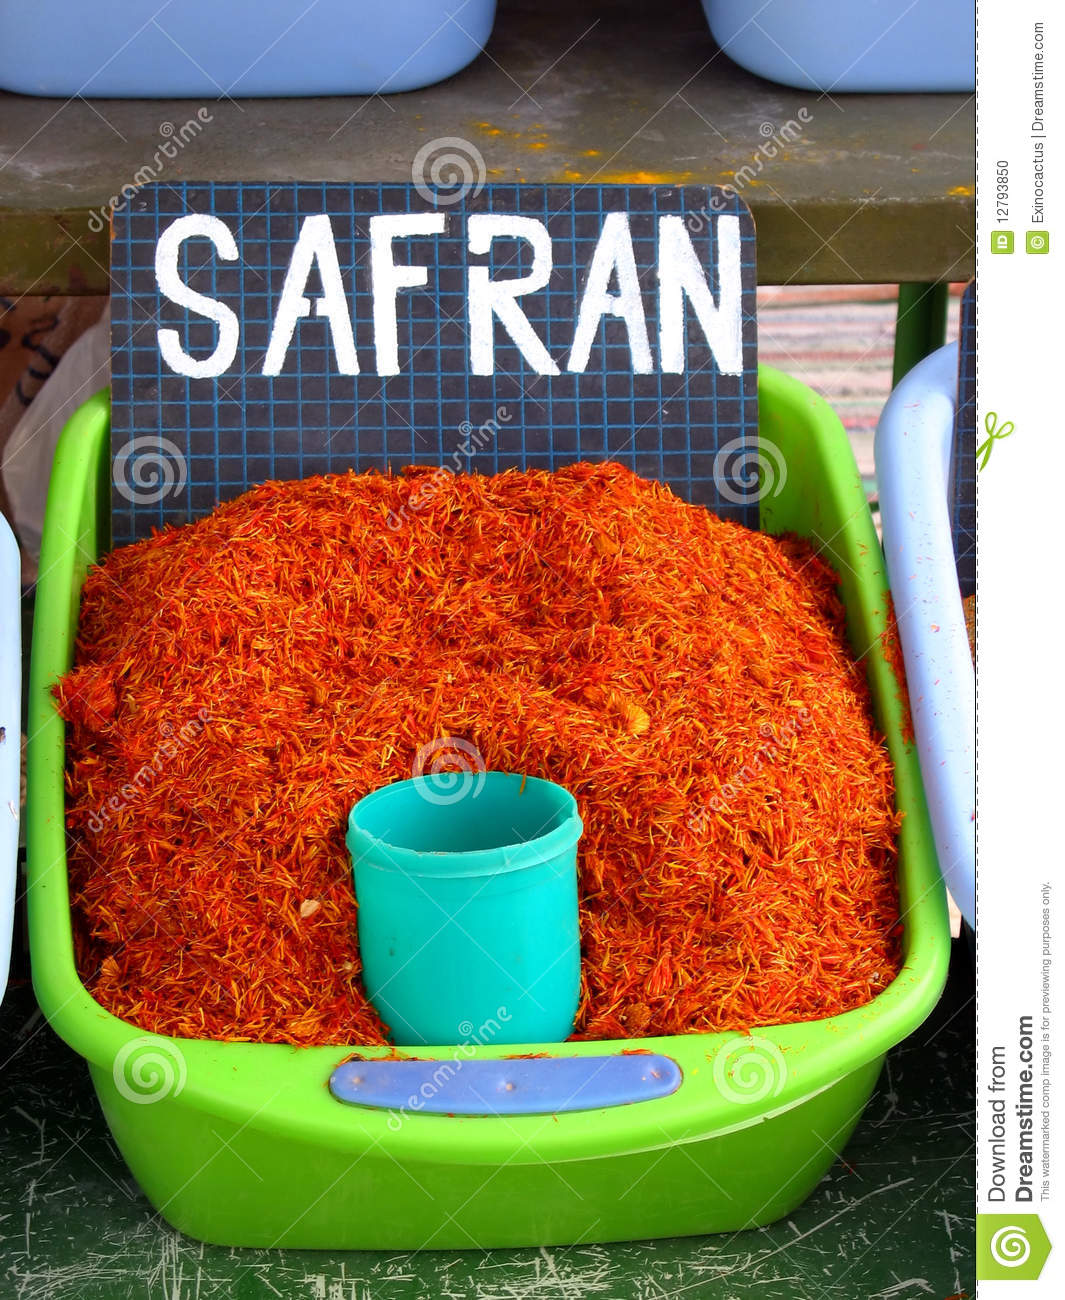 Safran spice stock photo. Image of cooking, flavour ...